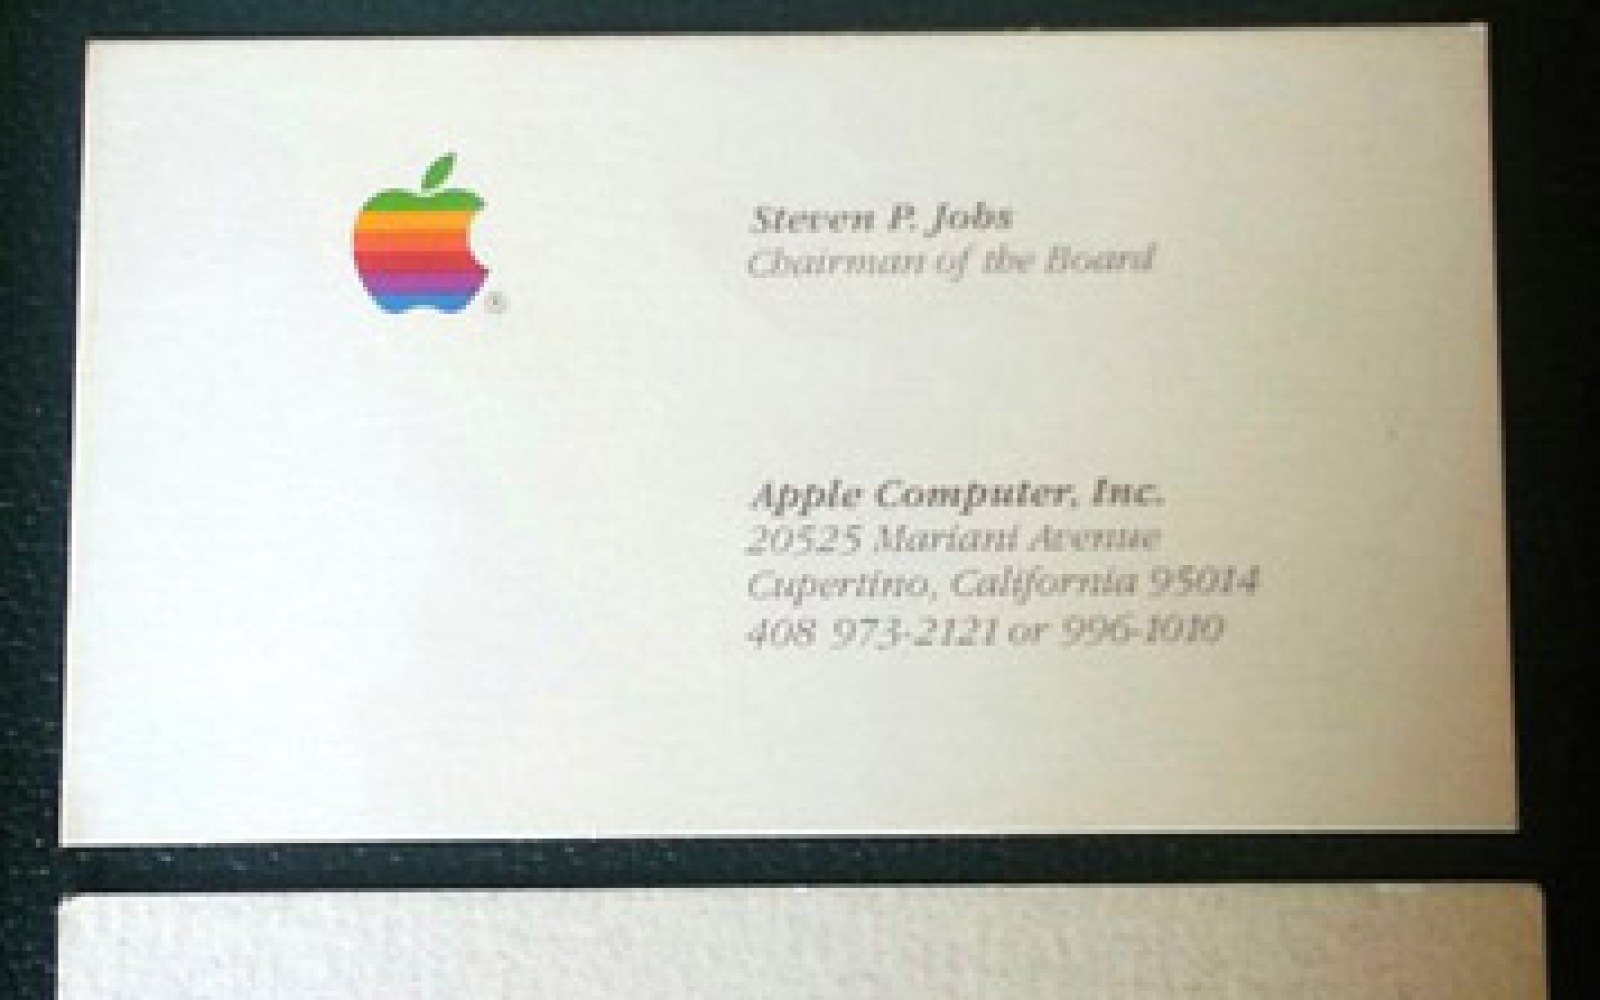 Steve Jobs business cards up for school auction, one each for NeXT, pre-1985 Apple & Pixar